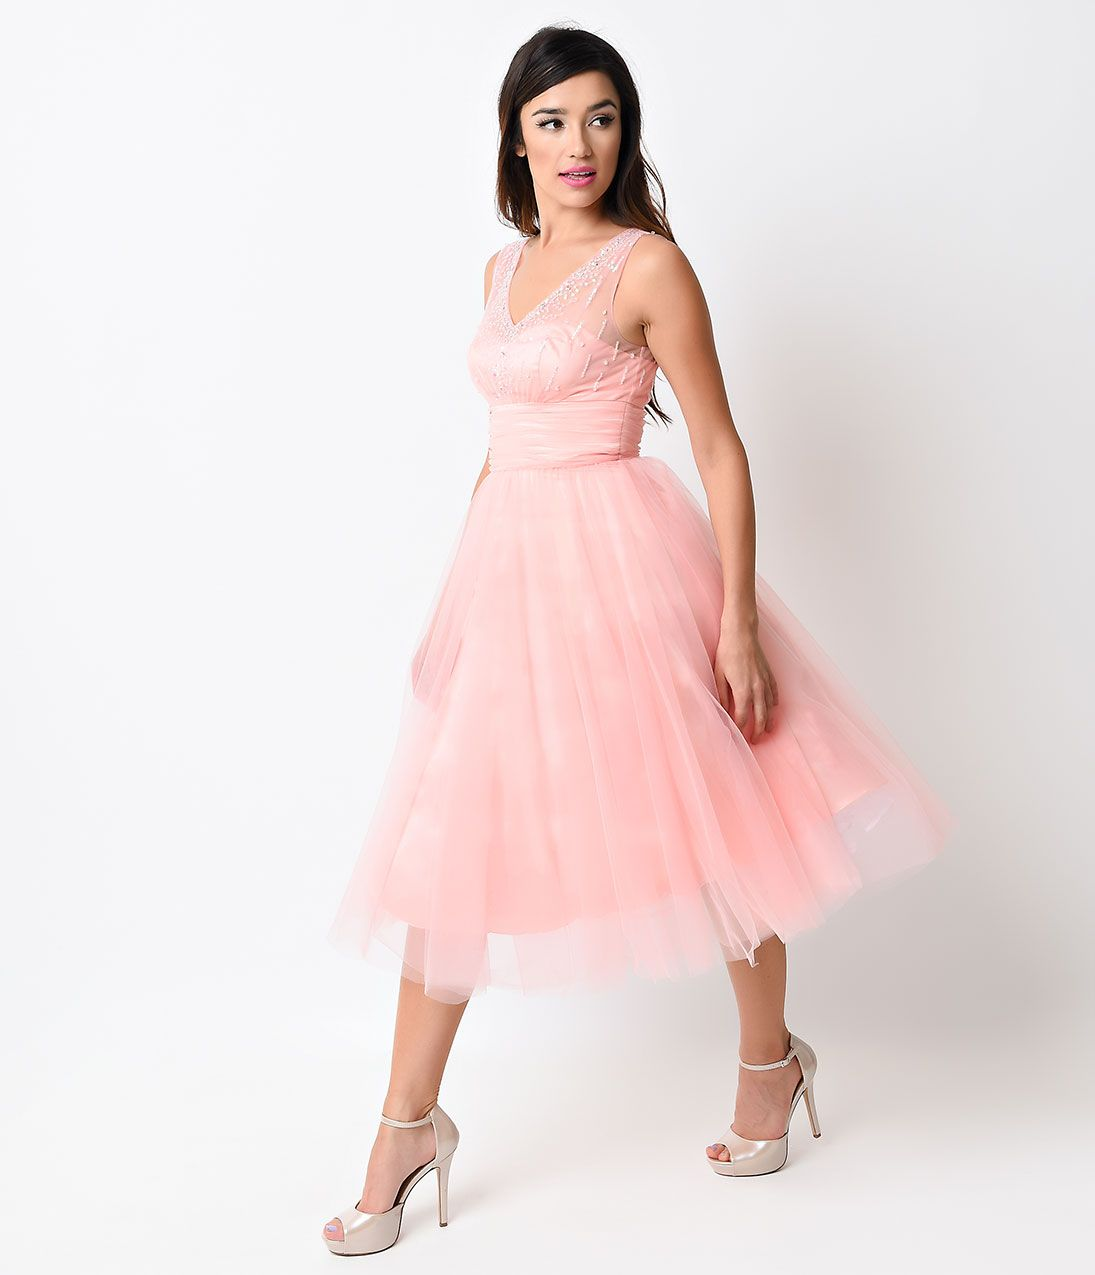 S dresses s dresses s style tulle prom dress and s